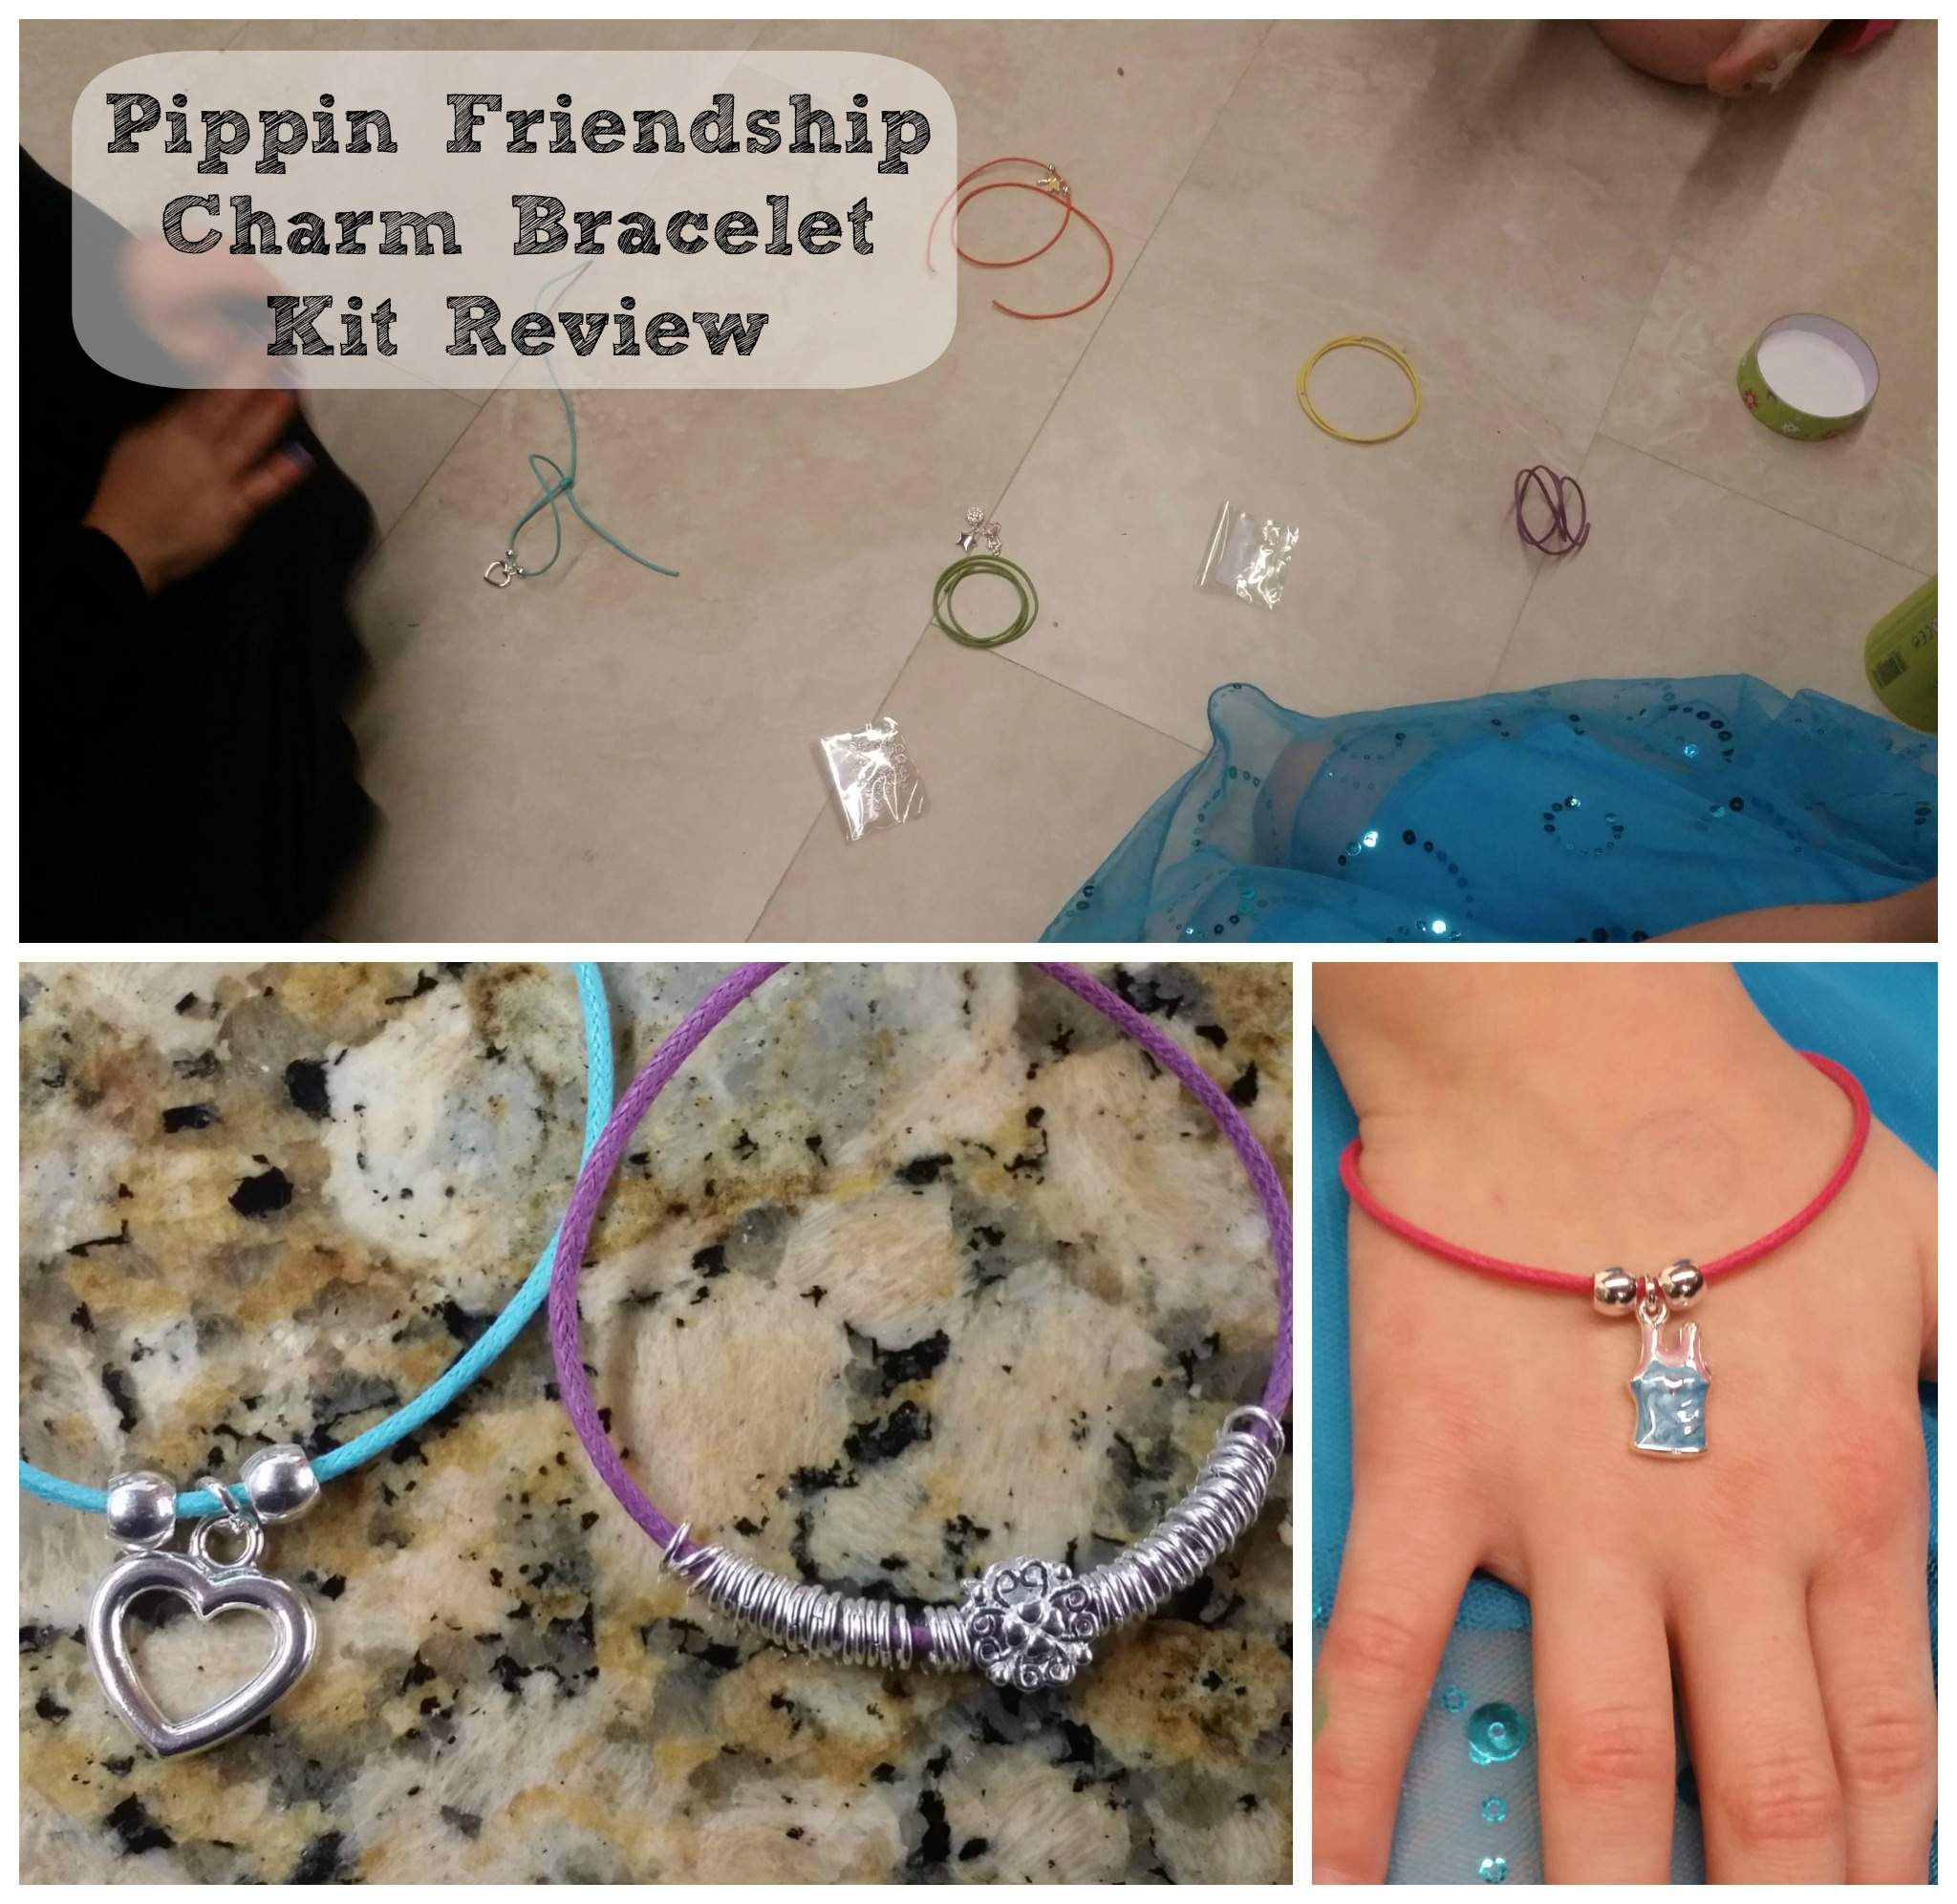 How to Make an Adjustable Knot Pippin Friendship Charm Bracelet